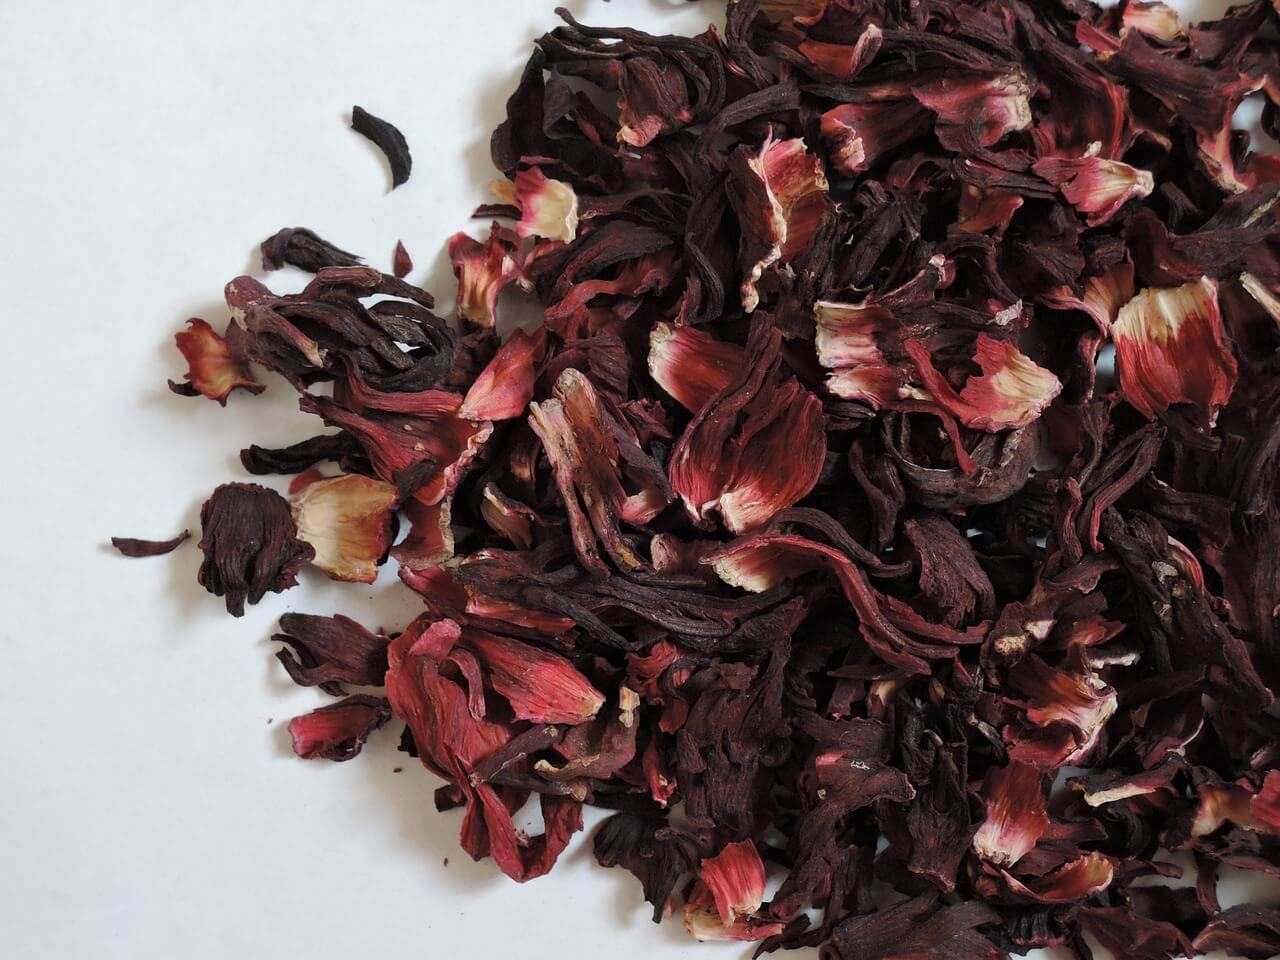 What Hibiscus Flowers Can You Use to Make Tea?